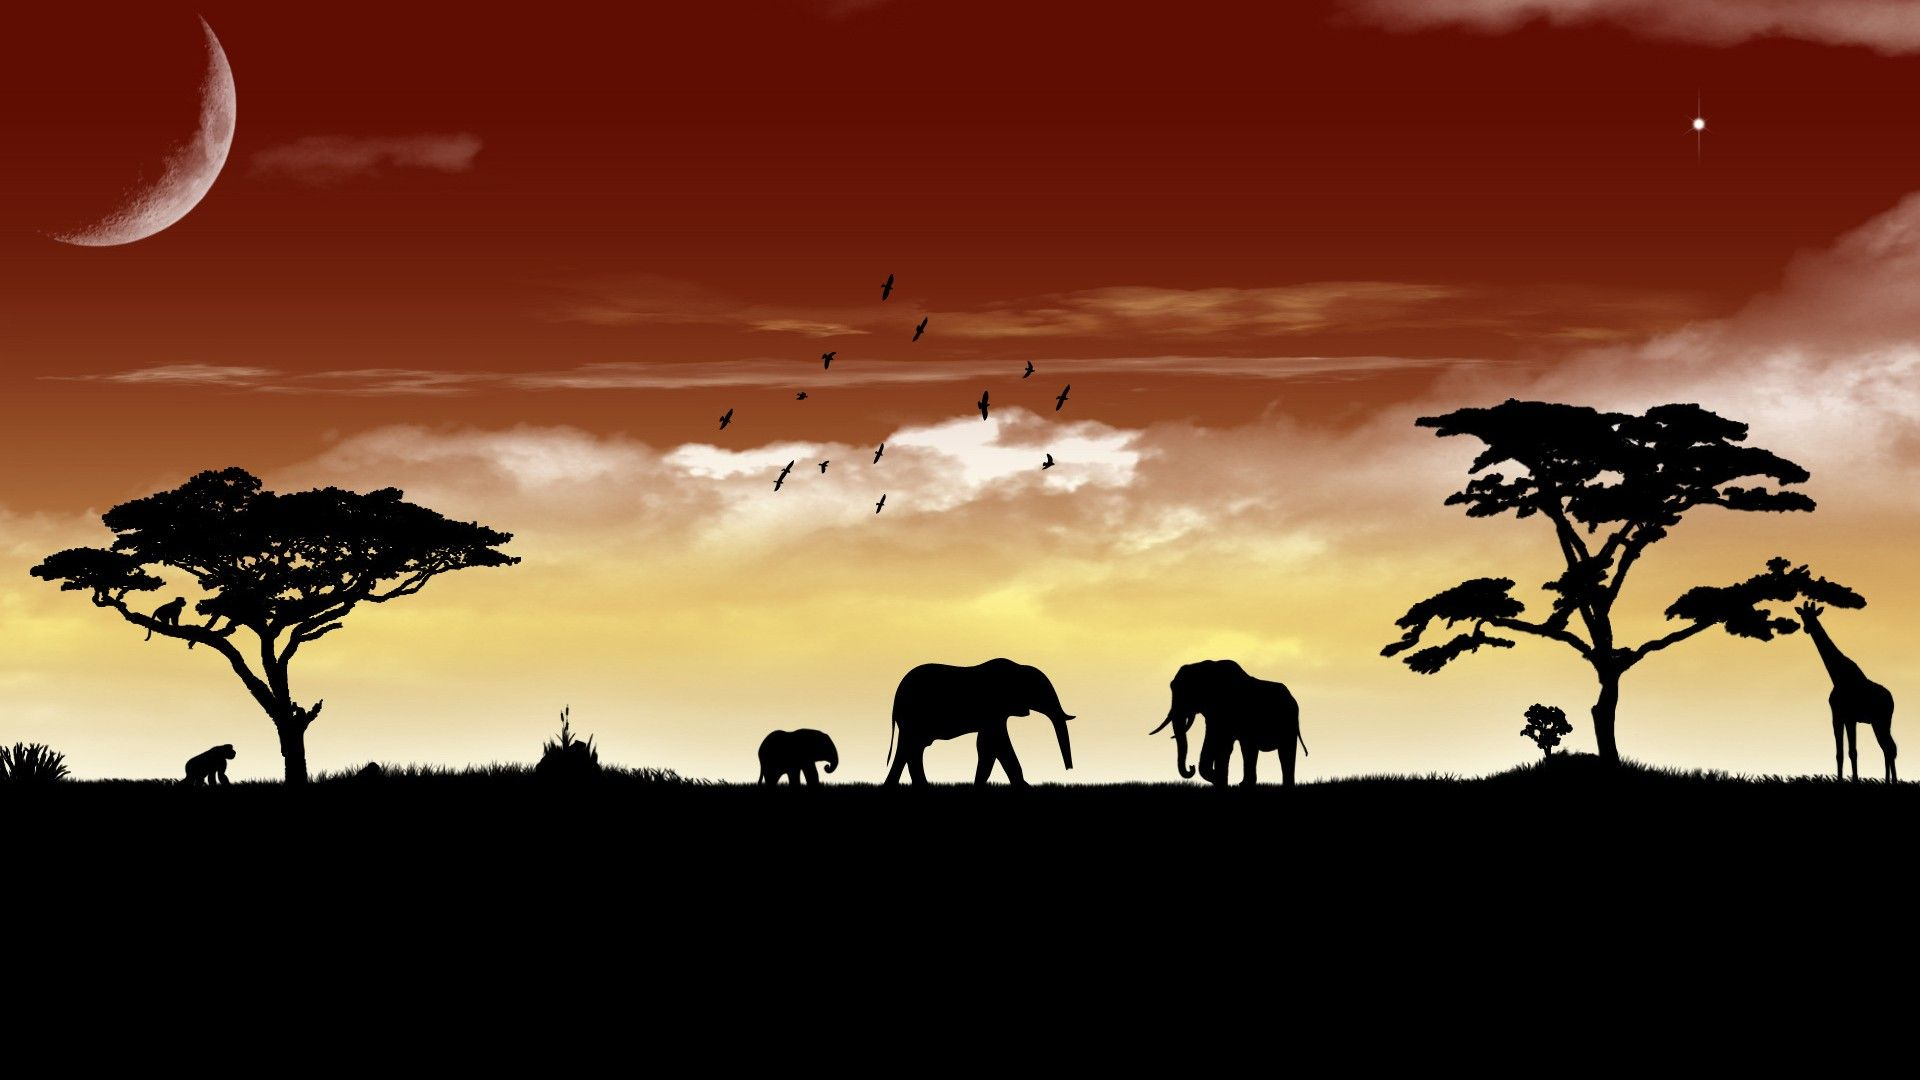 African Wildlife Wallpapers Hd Animals Wallpaper Dudaite Com Animal Wallpaper Elephant Wallpaper Elephant Pictures